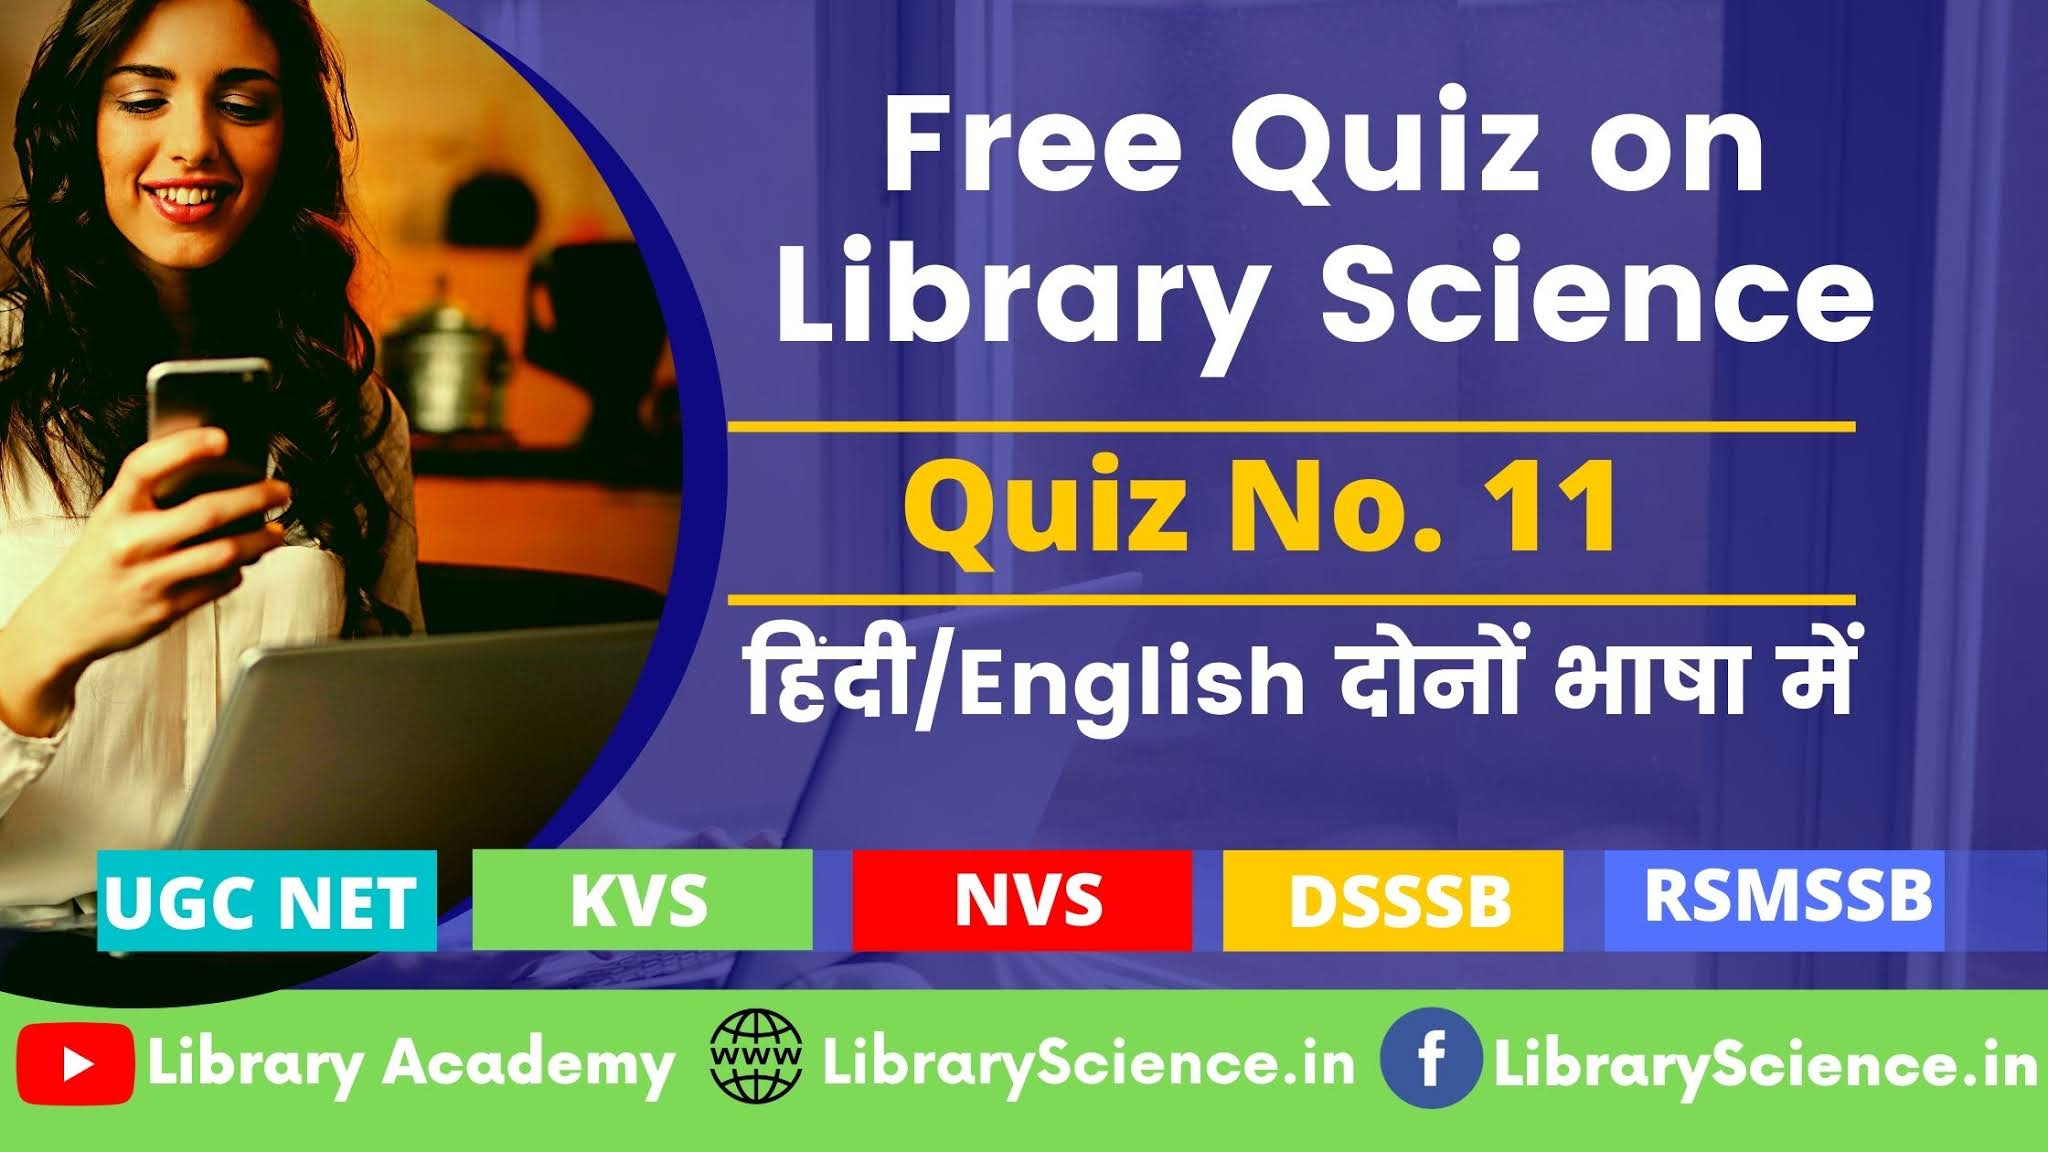 Library Science Quiz for KVS, NVS, DSSSB, RSMSSB & UGC NET